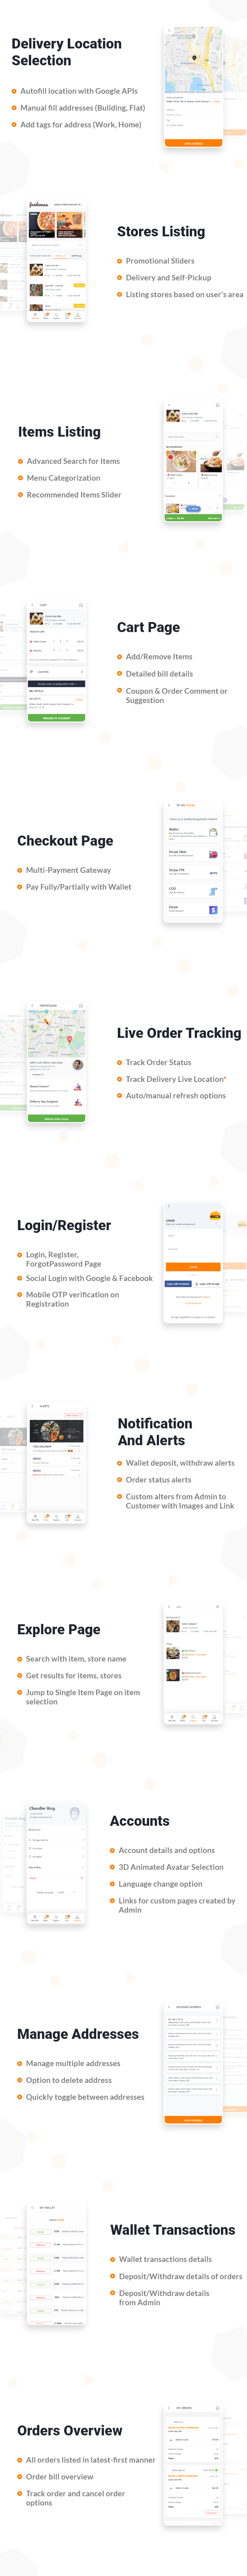 Customer Application features